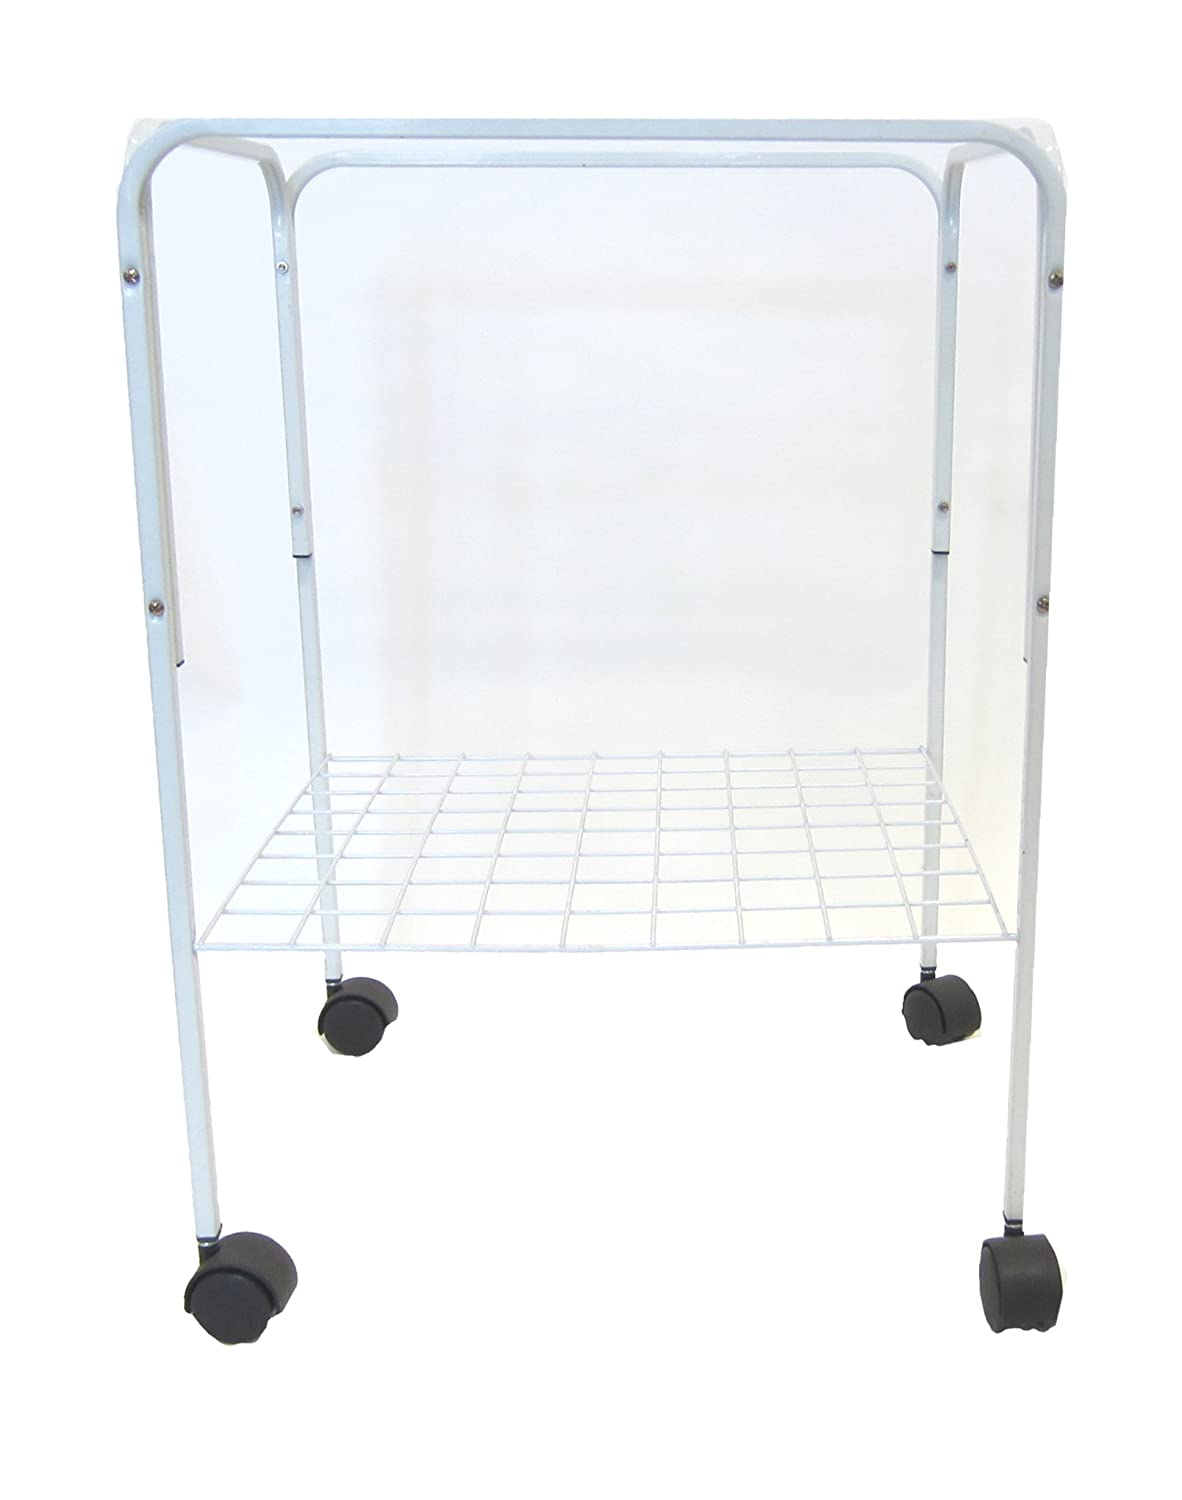 YML 4924WHT Bird Cage Stand, White YML GROUP INC